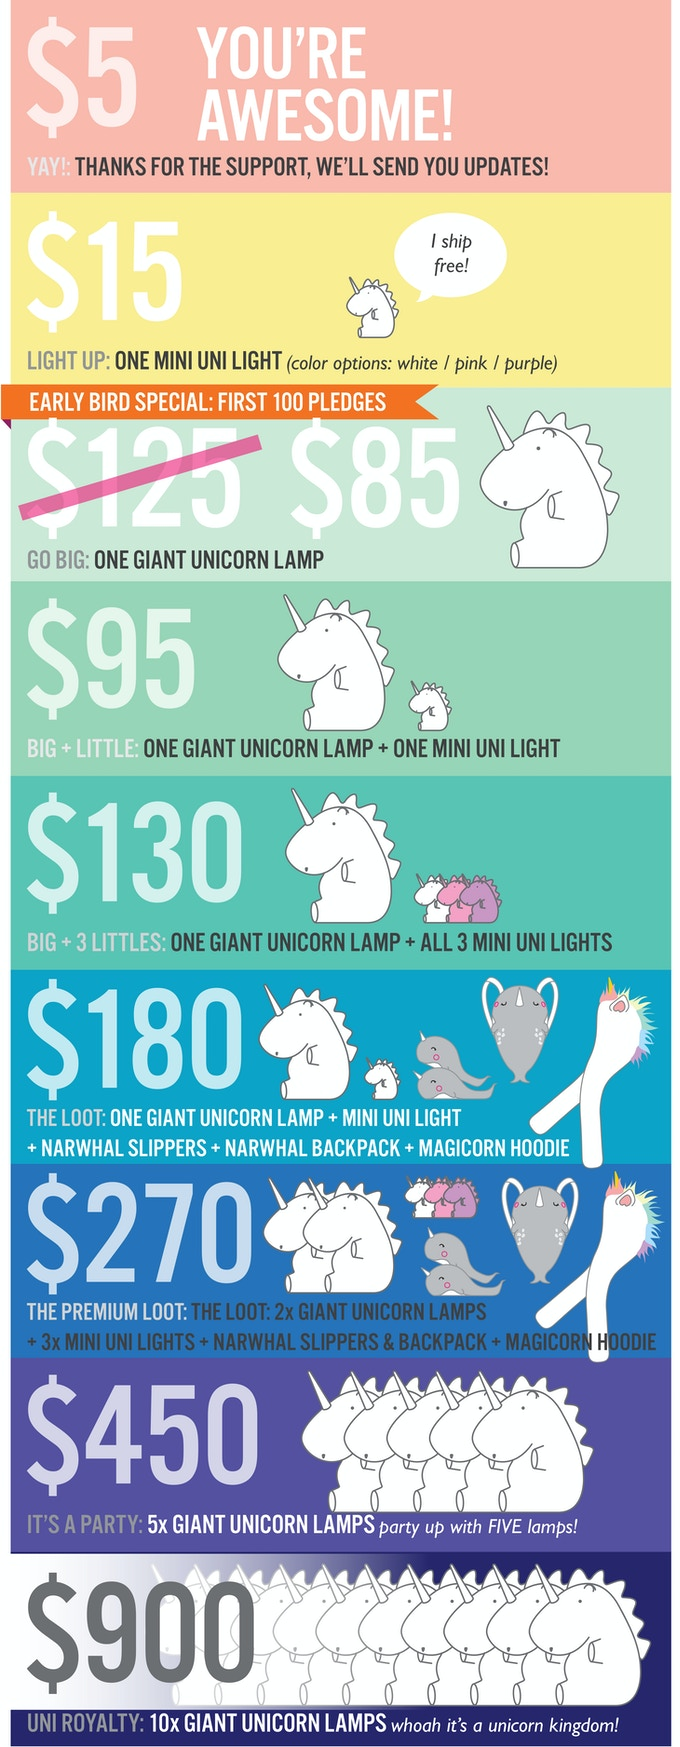 Giant Unicorn Lamp Rewards